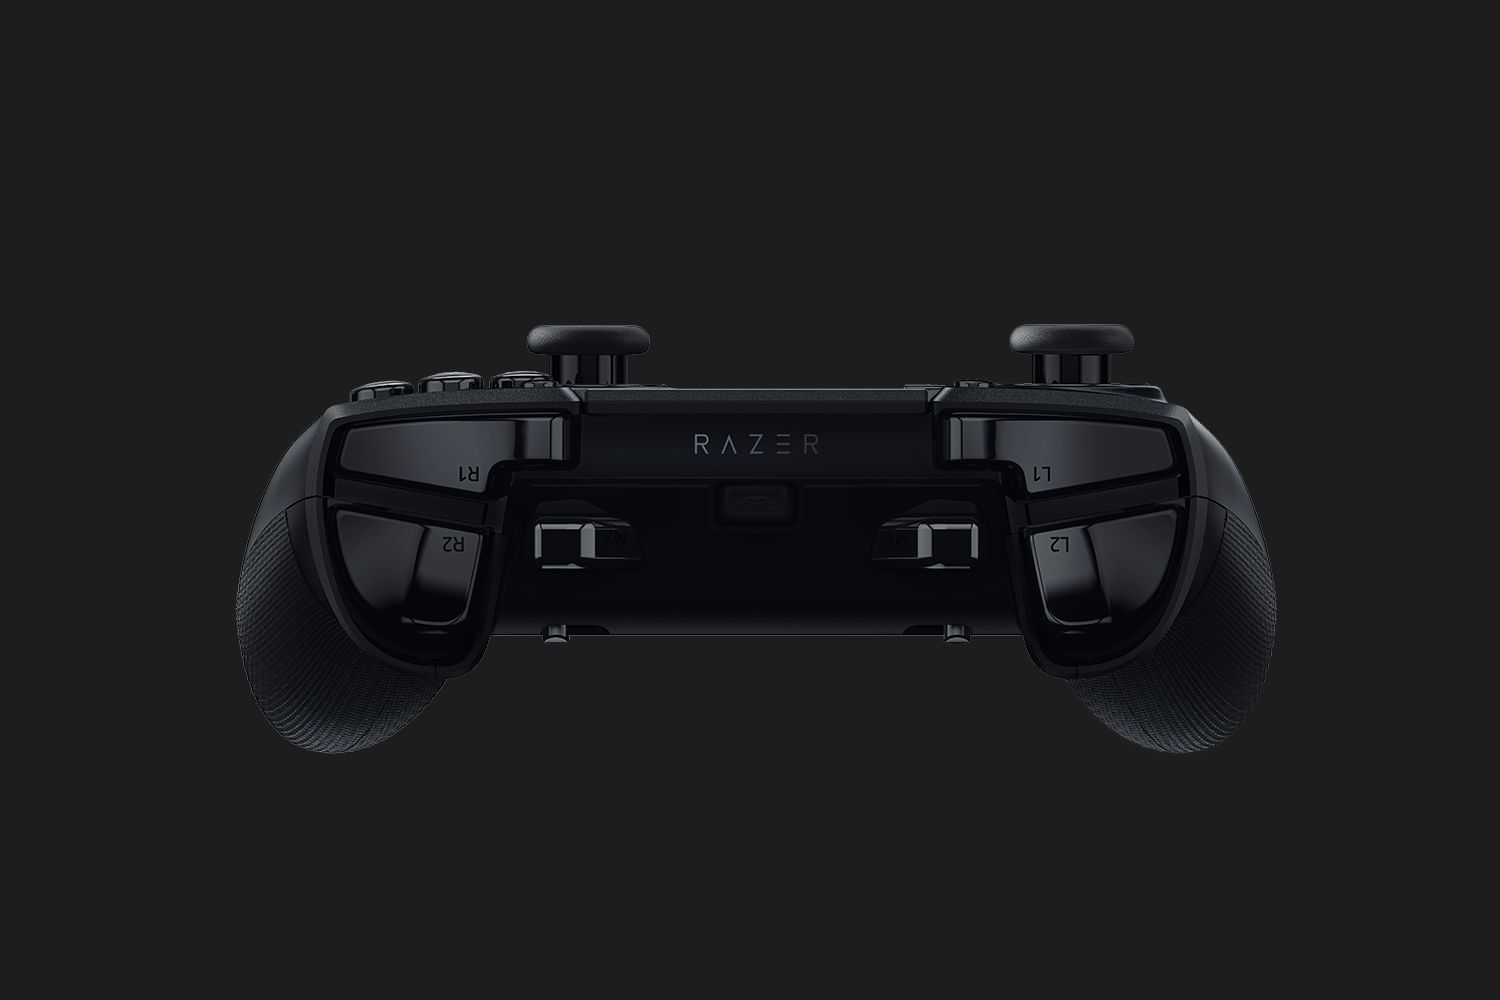 Review Razer Raiju Tournament Edition Controller Simply The Best Mspoweruser The razer raiju tournament edition offers a competitive edge and premium feel… at a premium price. review razer raiju tournament edition